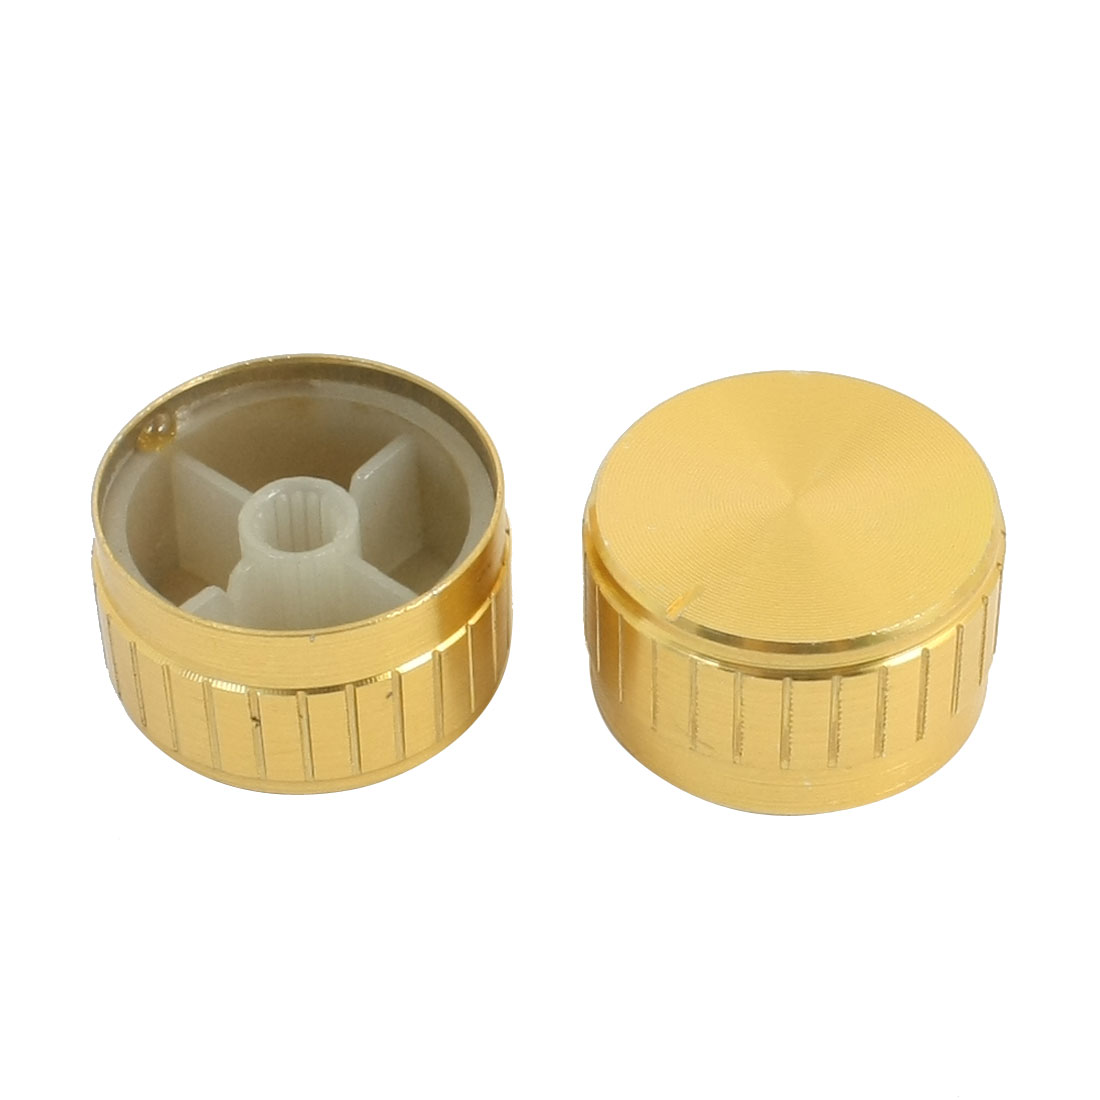 2pcs Gold Tone Plastic Potentiometer Stereo Audio Volume Regulator Cover Cap Head Knobs 30x17mm